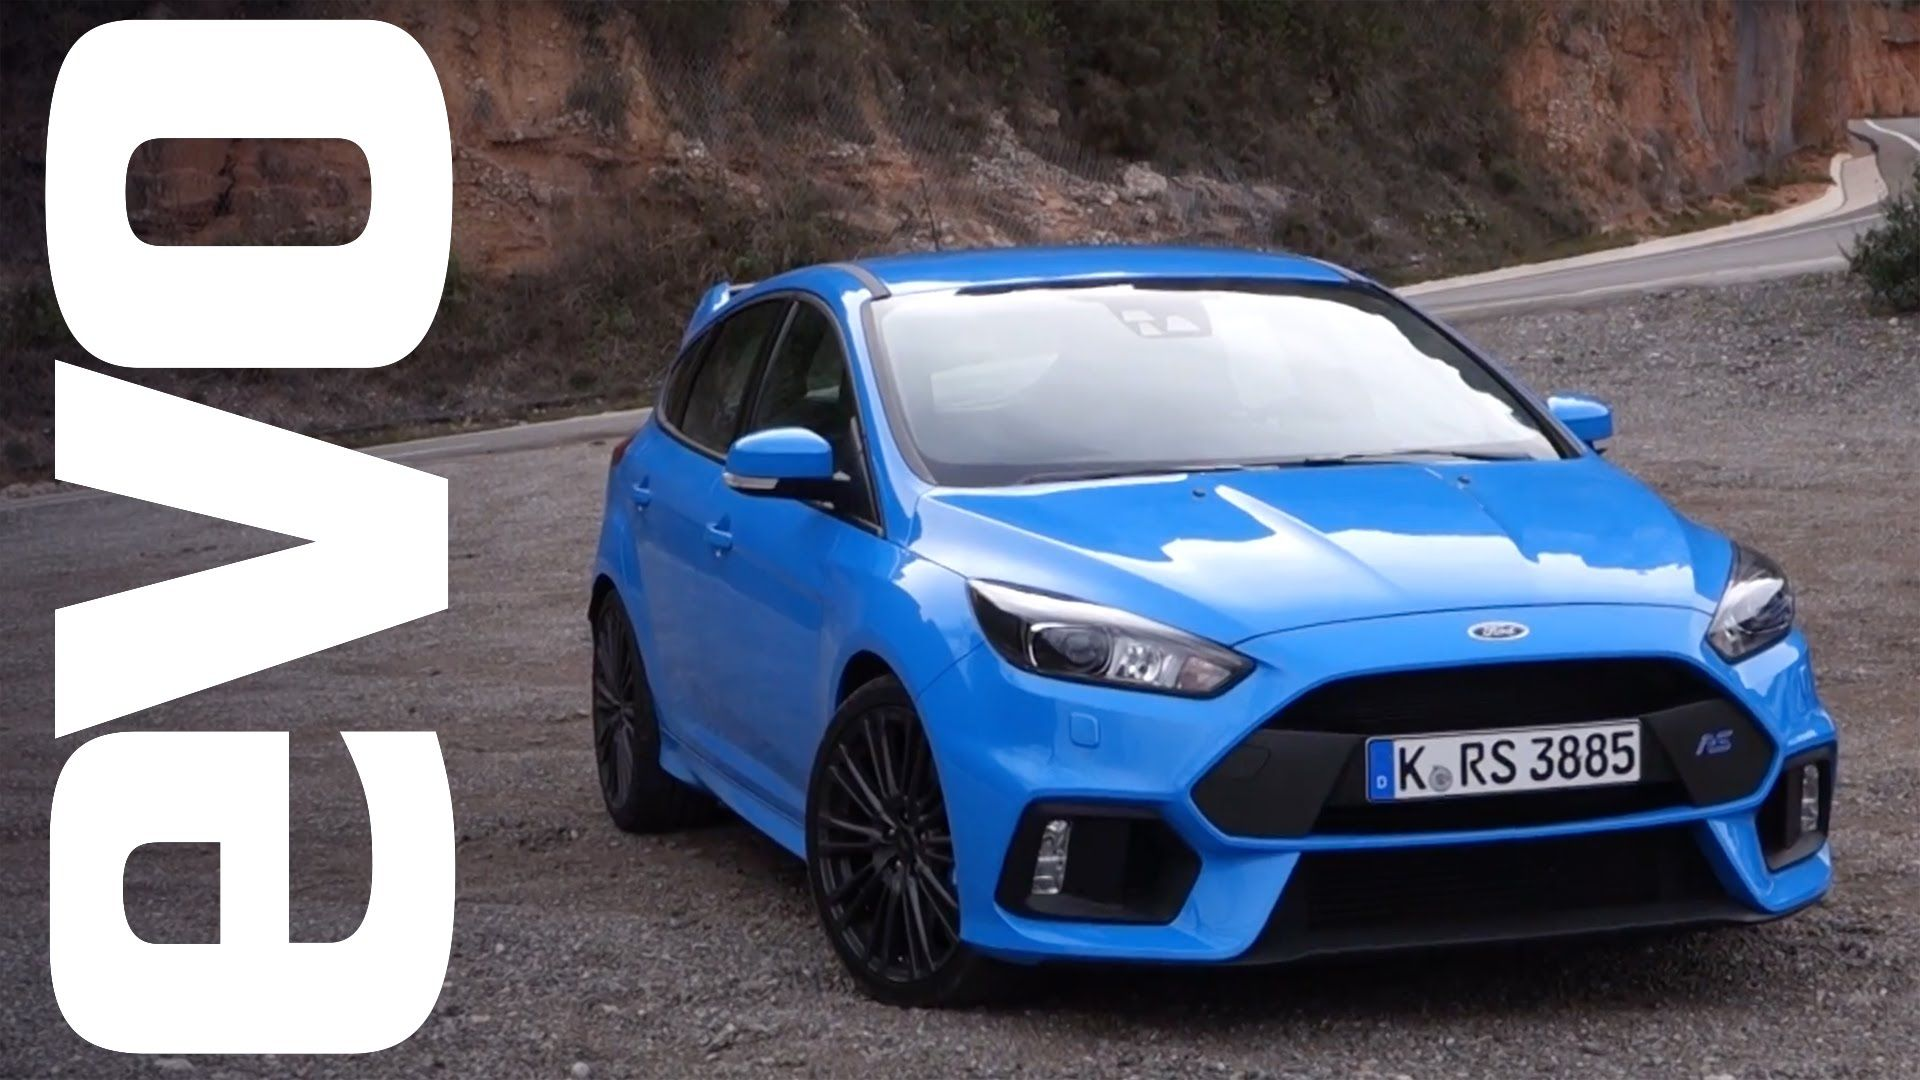 Ford Focus Rs Review Overhyped Evo Diaries Ford Focus Rs